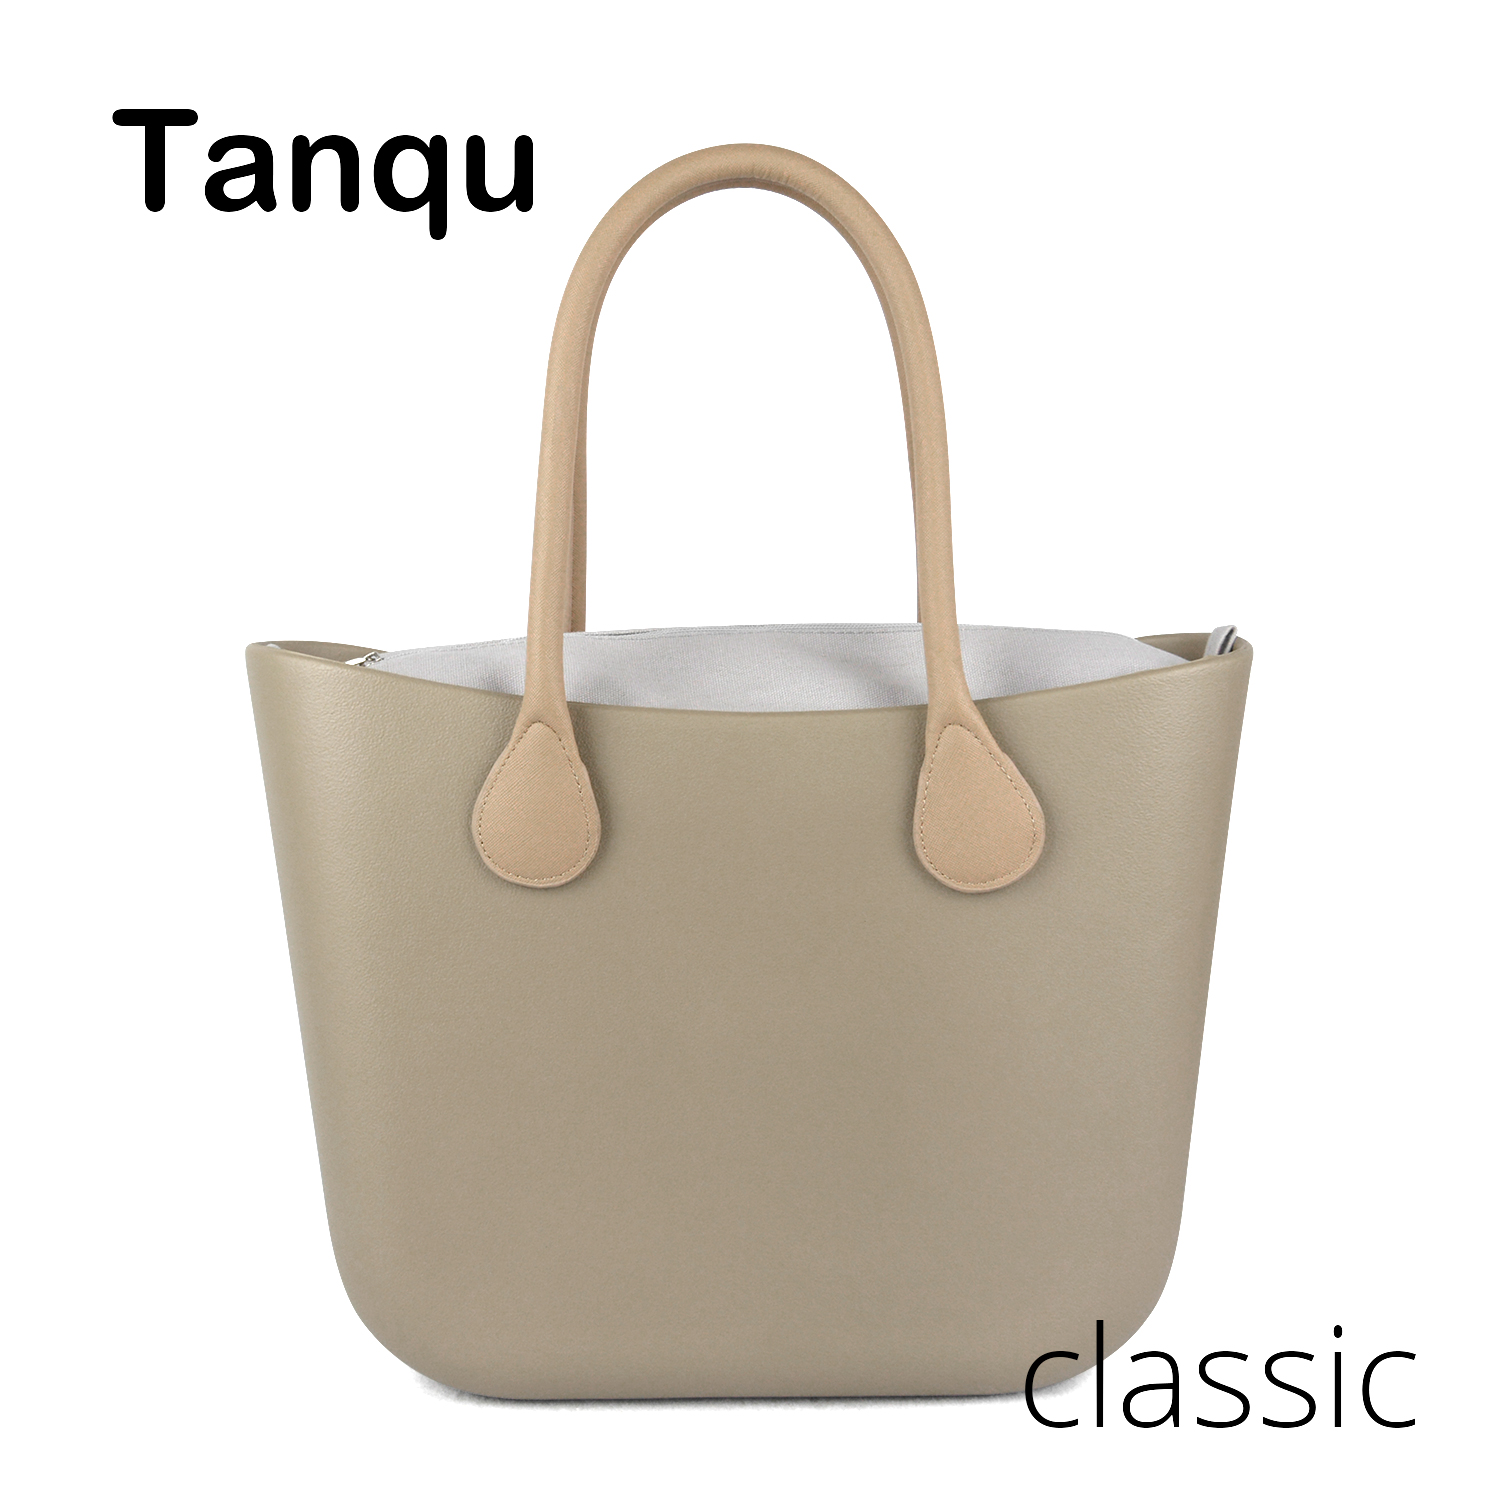 2019 New TANQU Classic EVA Bag With Insert Inner Pocket Colorful Handles EVA Silicon Rubber Waterproof Women Handbag Obag Style